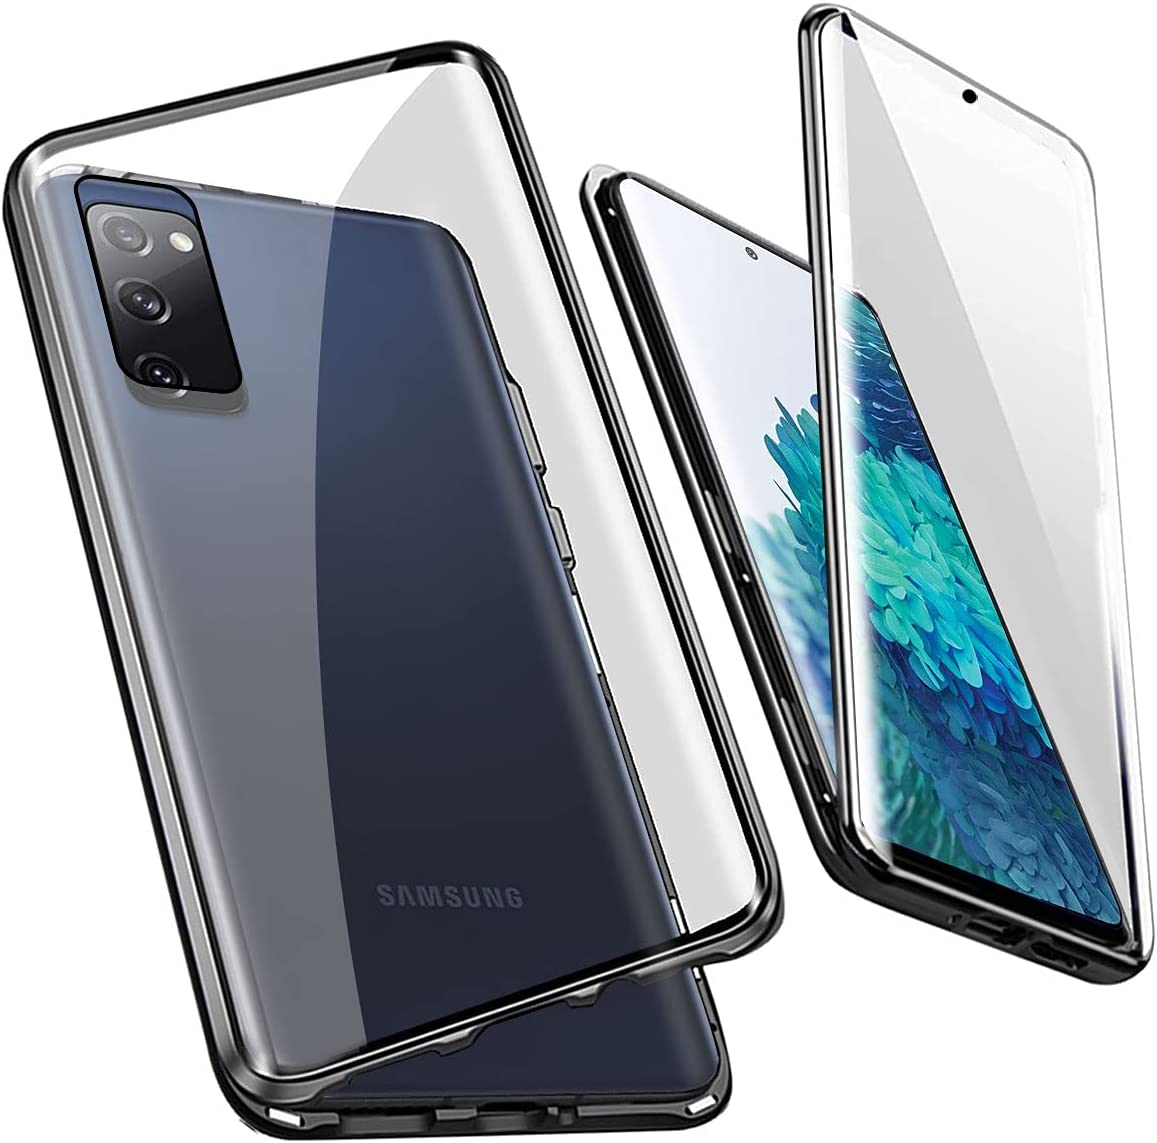 QUIETIP Compatible for Samsung Galaxy S20 FE Case,Magnetic Metal Clear Glass Case,Thin Body Metal Frame Double-Sided Tempered Glass with Built-in Screen Lens Protect,Black